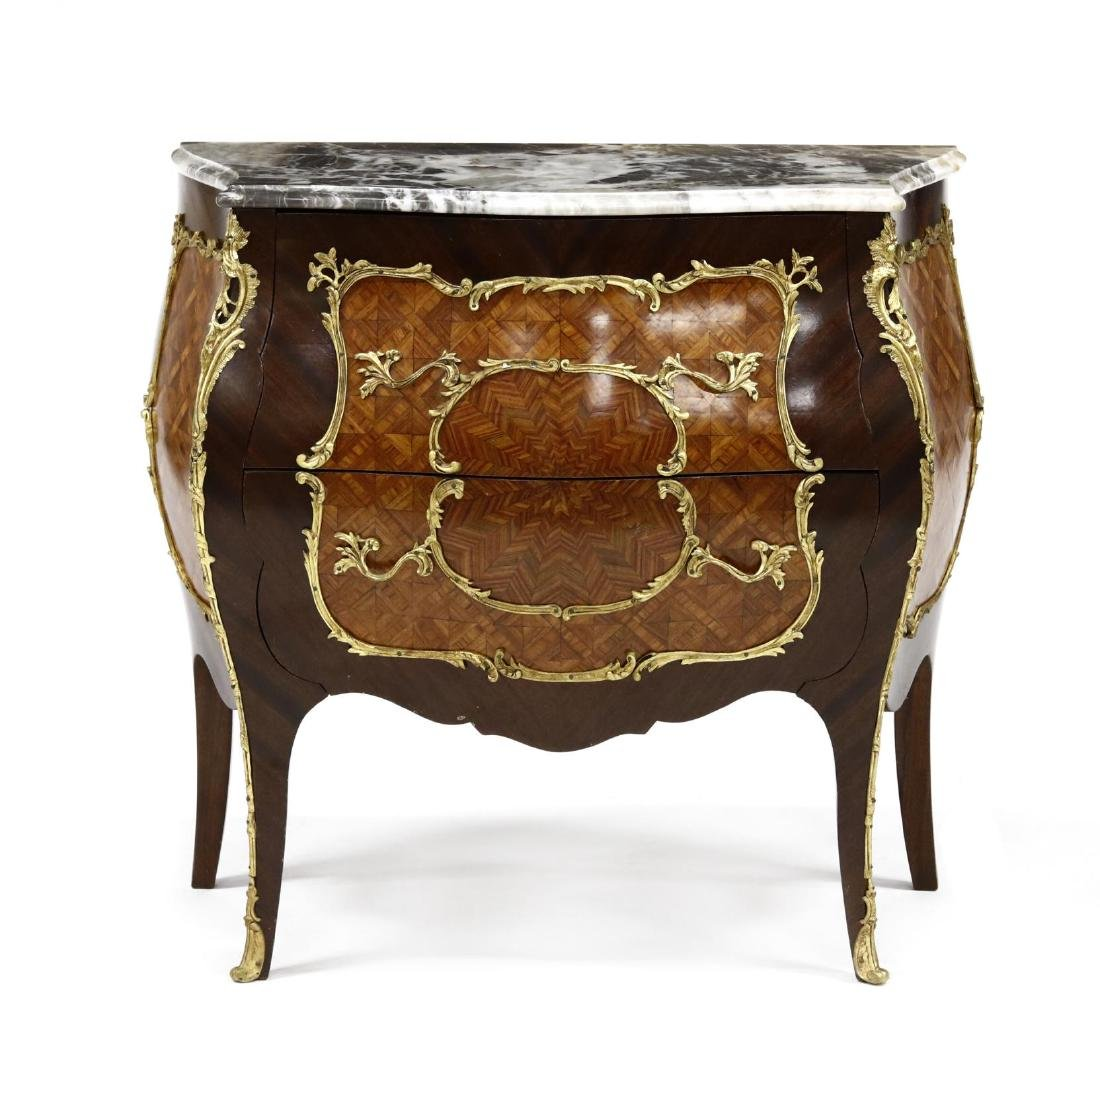 Louis XV Style Marble Top Parquetry Inlaid Commode